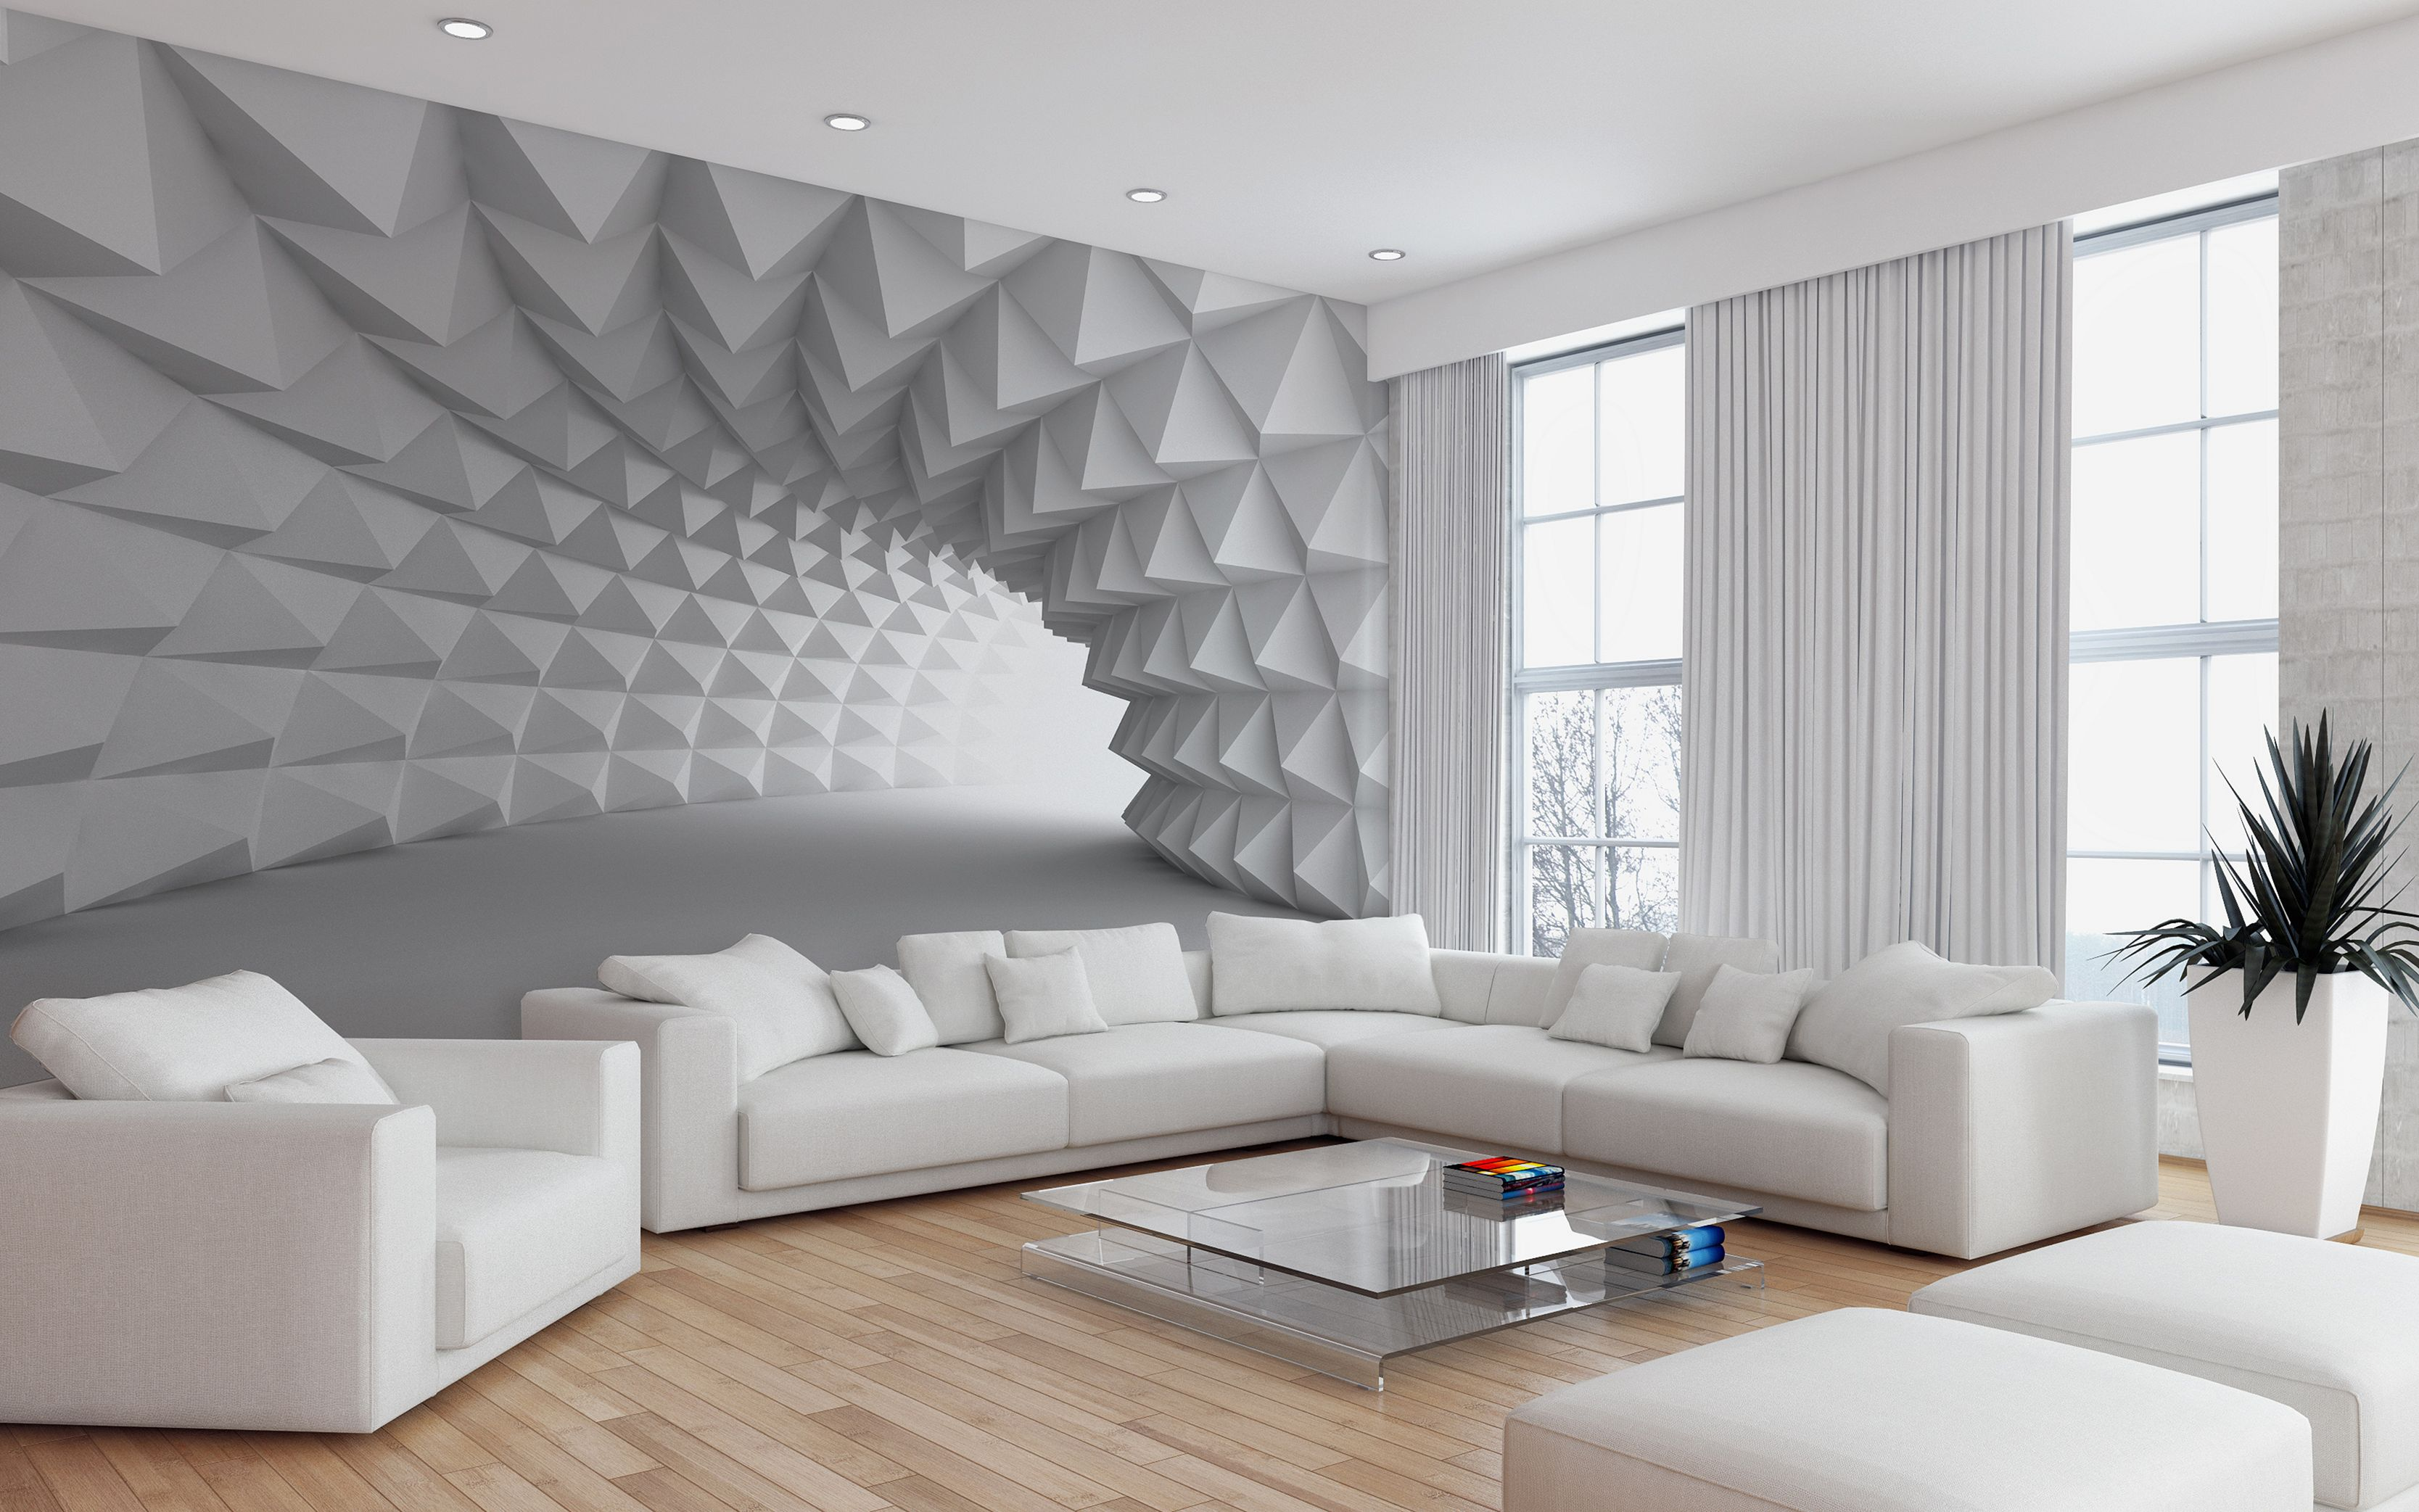 12 Gorgeous Living Room Design With 3D Wall Ideas To ... on Pictures For Room Decor  id=13883